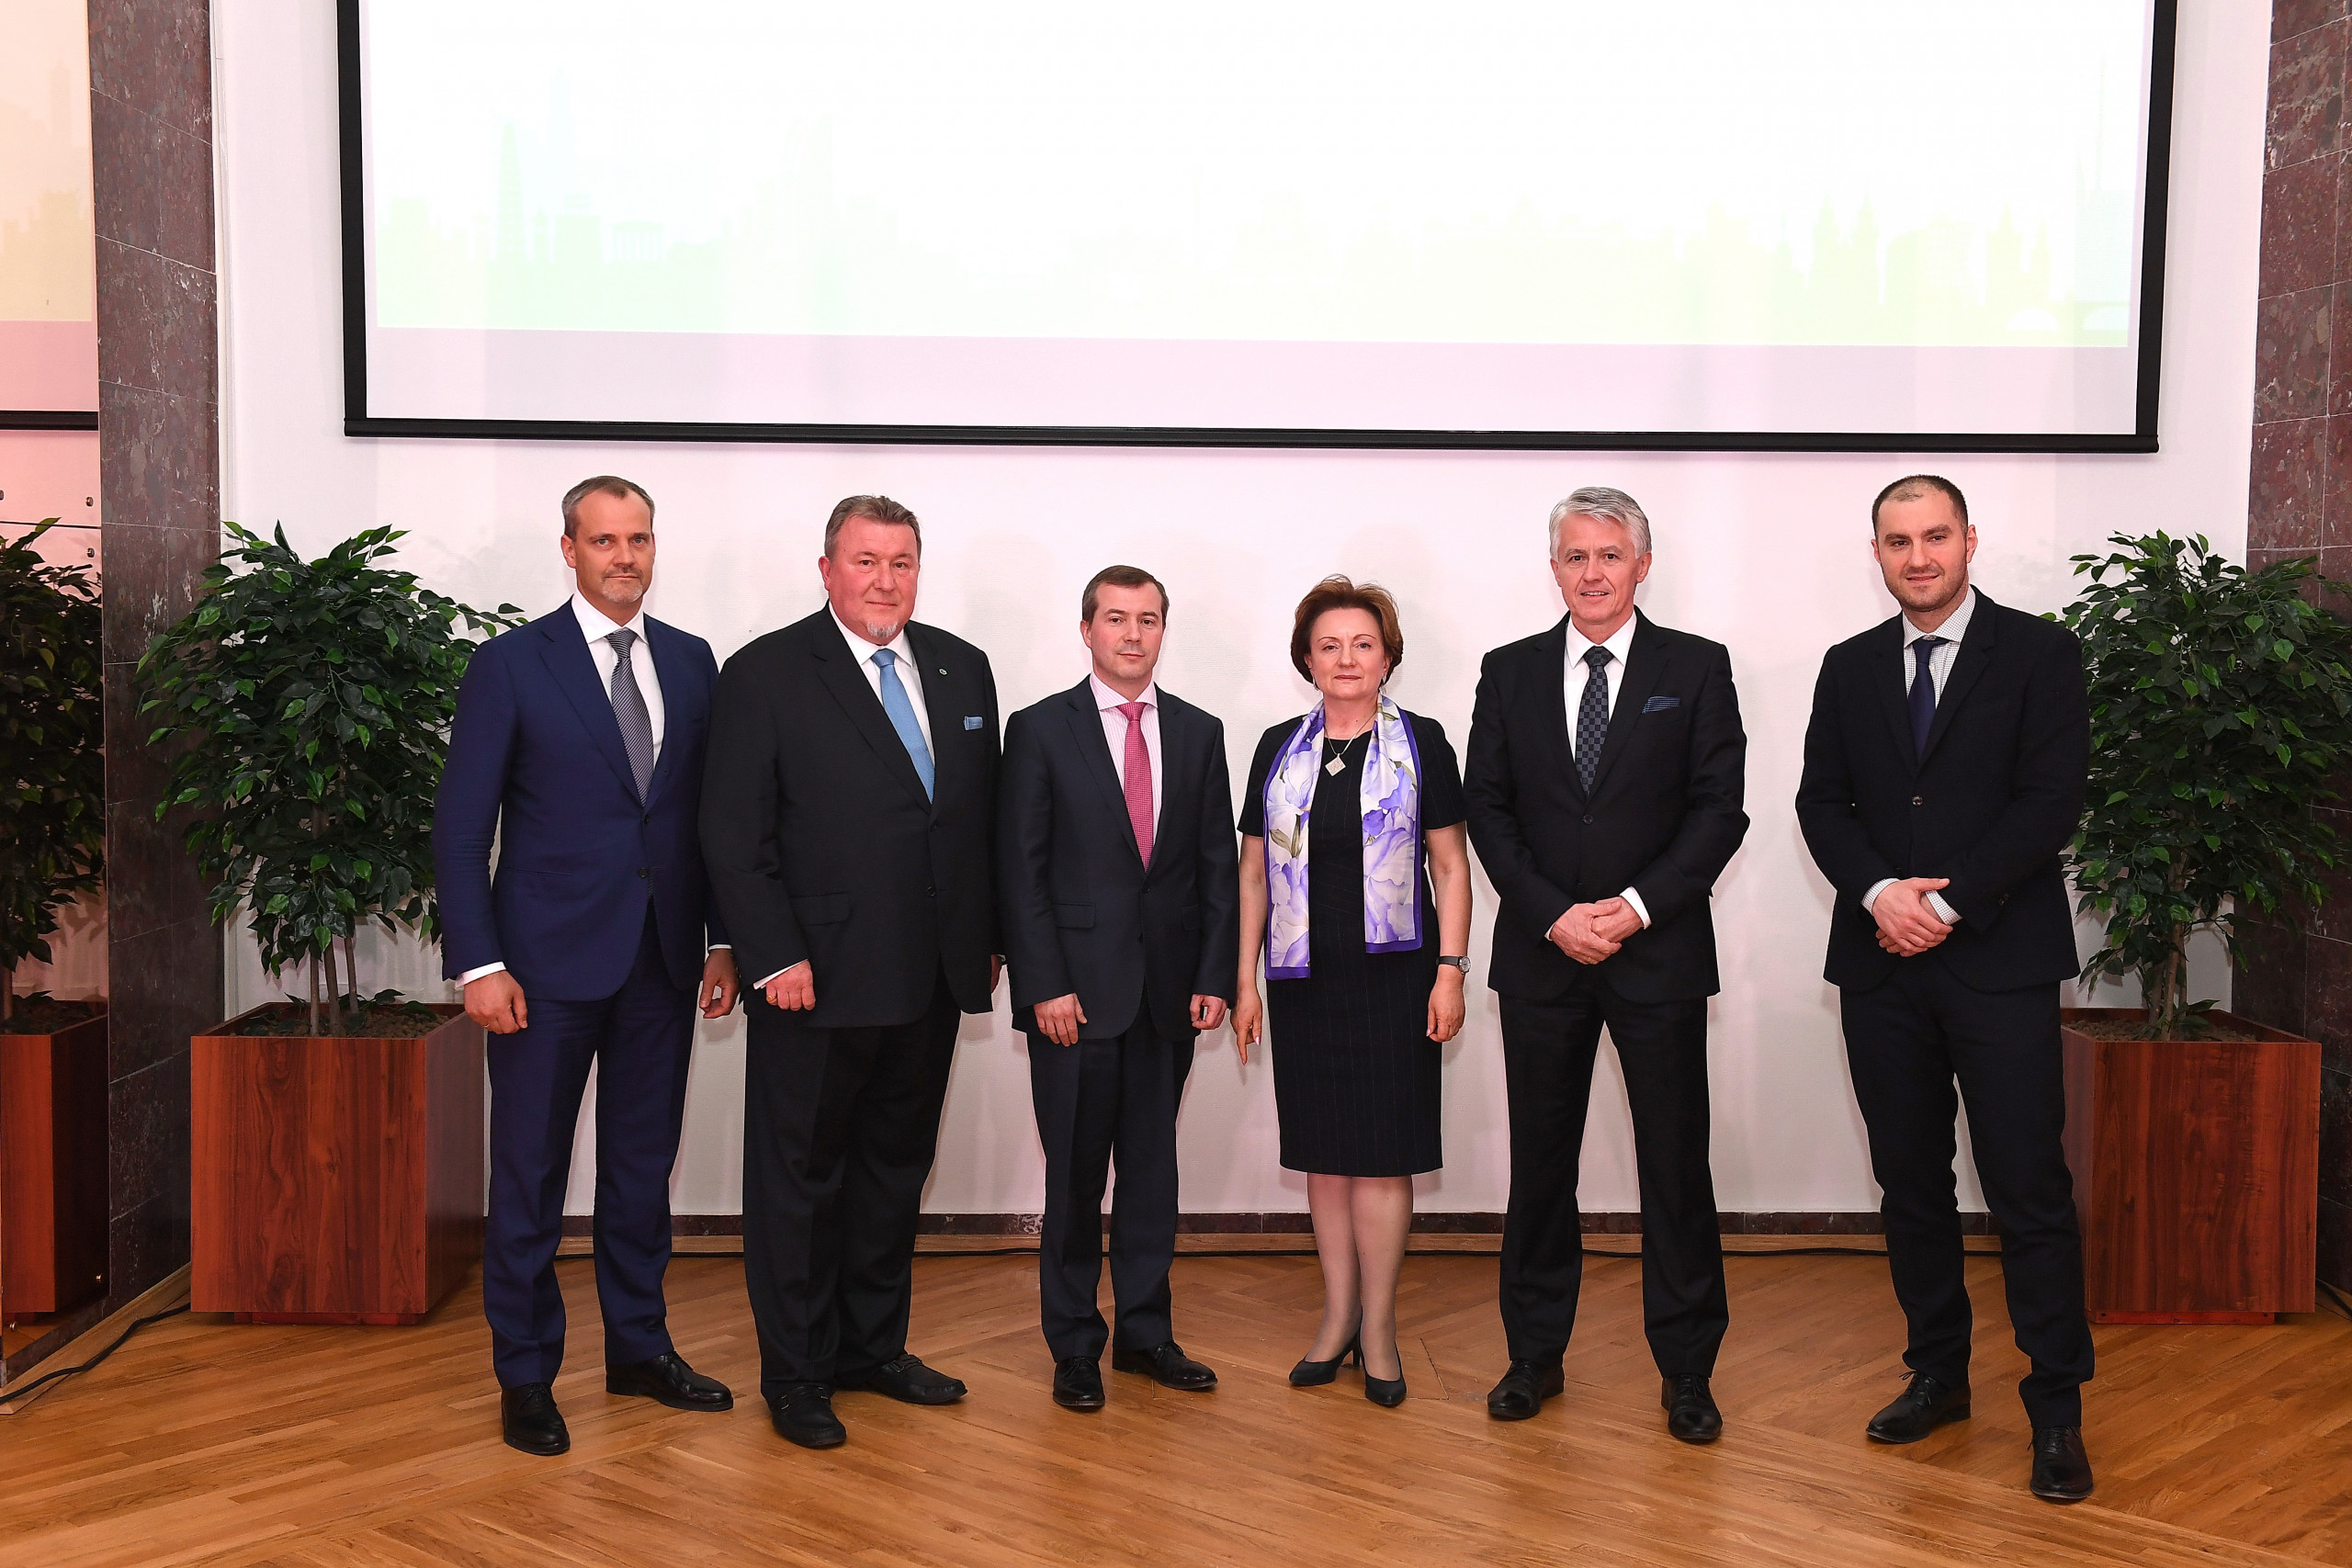 Partnership for Development: International Investment Bank hosts a reception in honour of a new Chairman of the Board of International Bank for Economic Cooperation Denis Ivanov